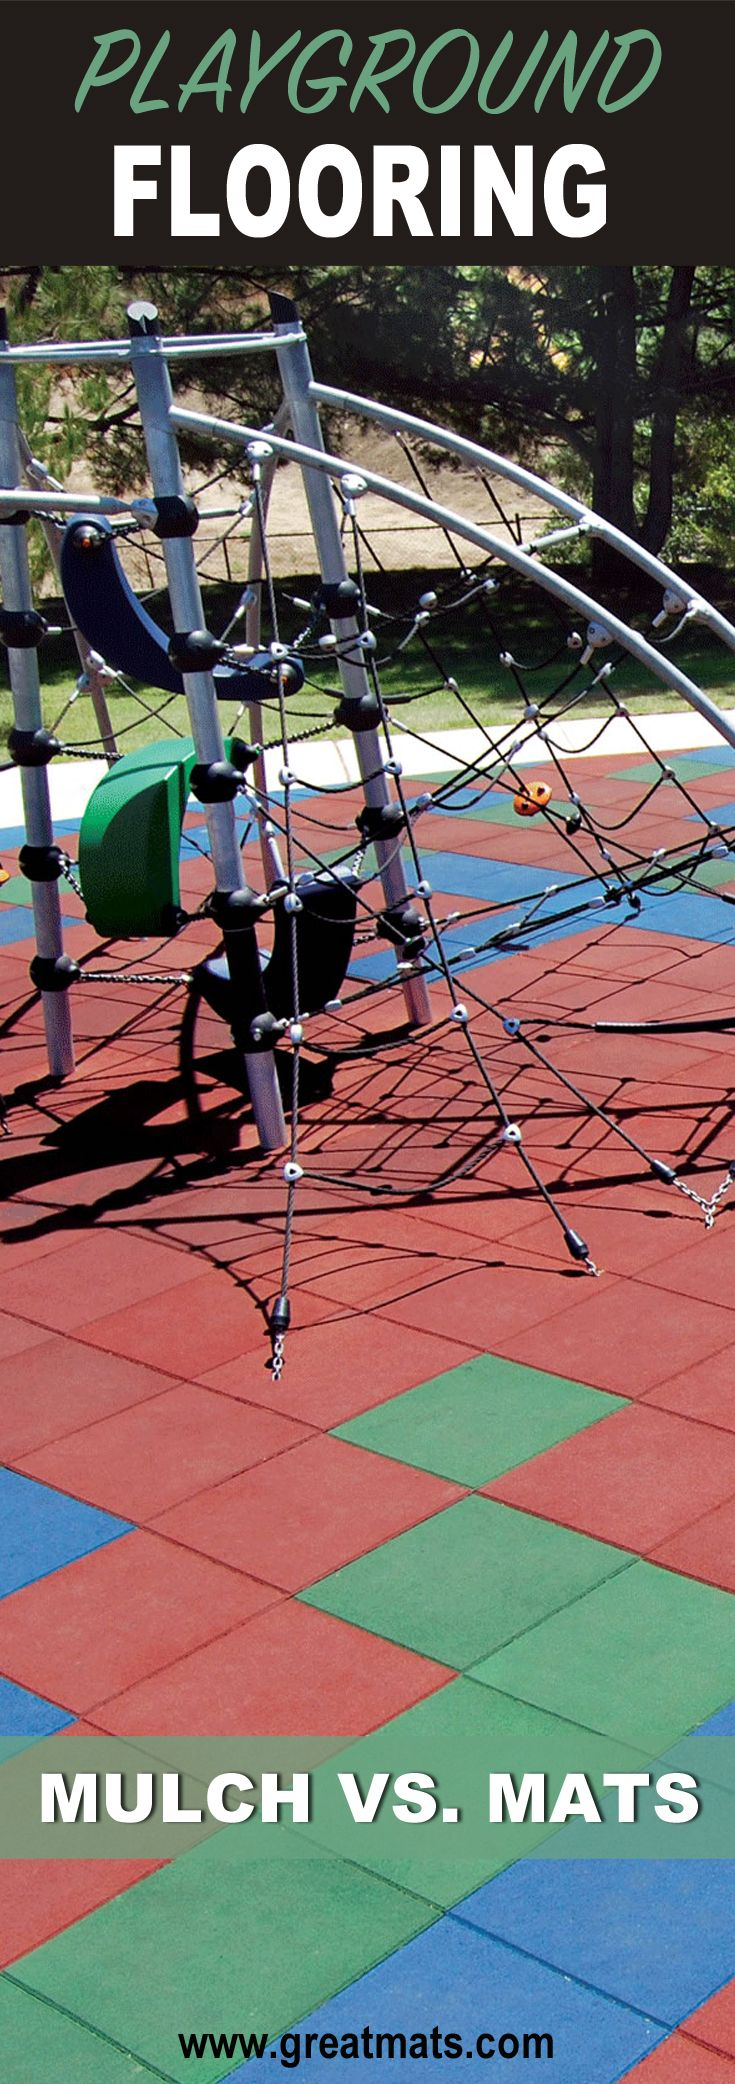 which is better for playground safety playground mulch or